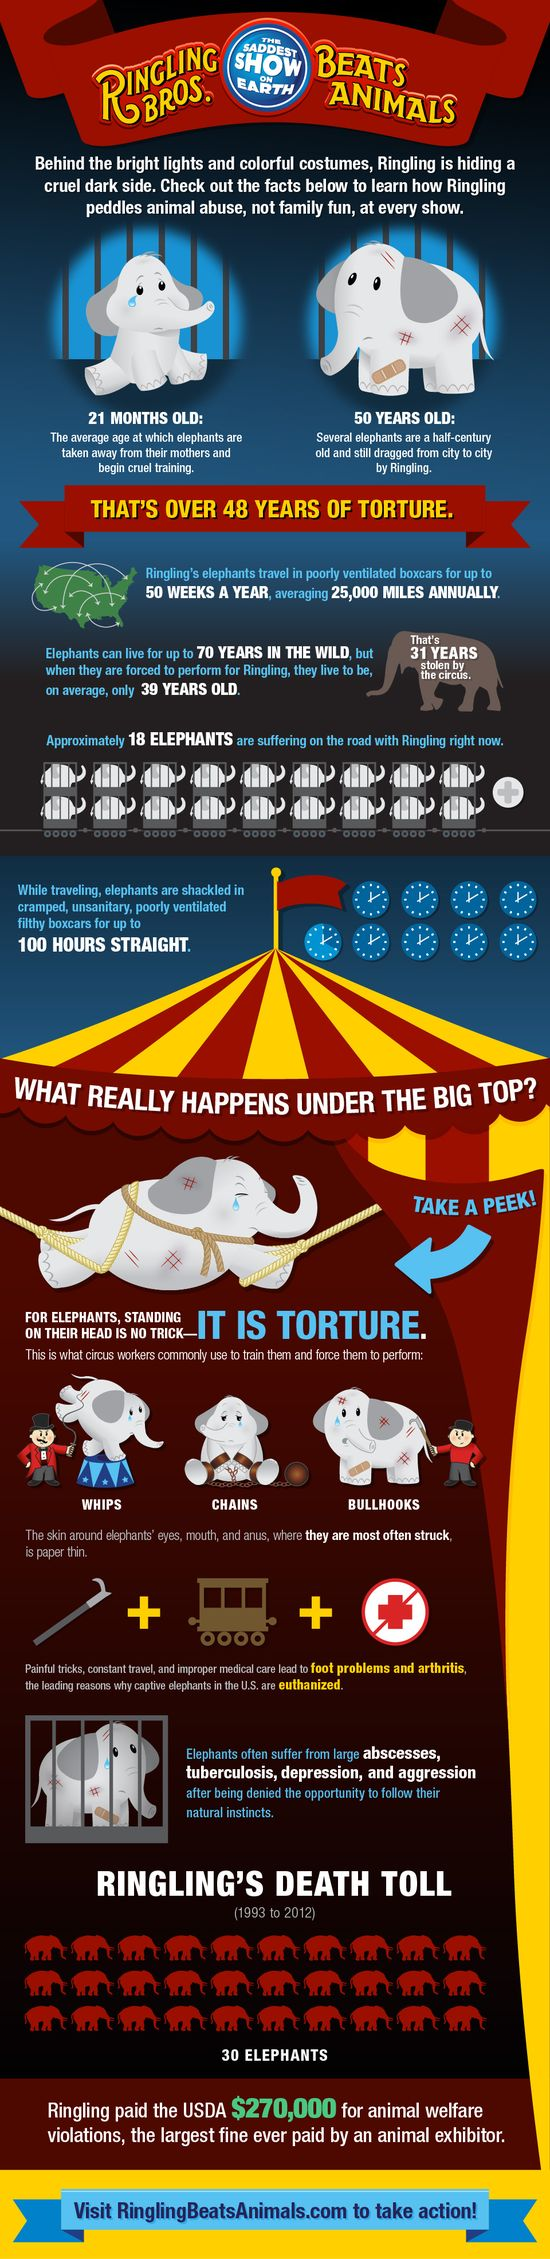 Behind the bright lights and colorful costumes, the Ringling Bros. circus is hiding a cruel, dark truth. Ringling doesn't want you to know what really happens to the animals who are forced to perform in its acts, but this infographic exposes some of the circus's abuses. #infographic #ringling #animalabuse #circus #elephants #animalrights #ringling